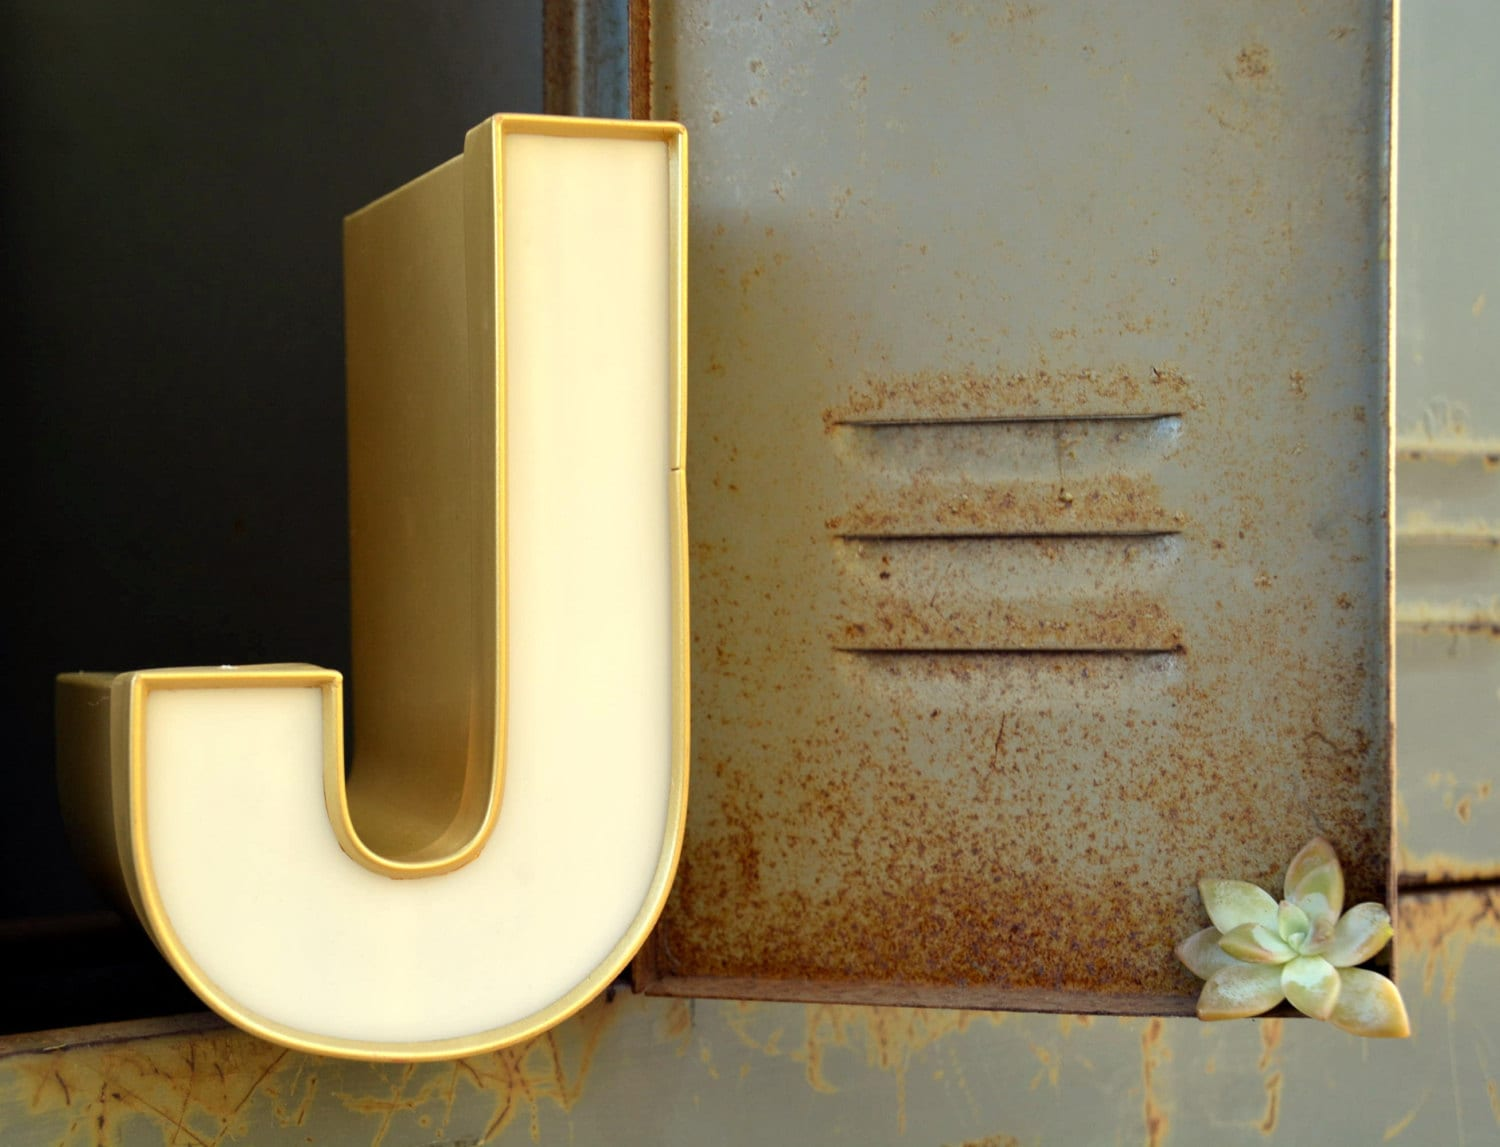 Vintage marquee sign letter capital 39j39 large gold for Large gold letters for walls